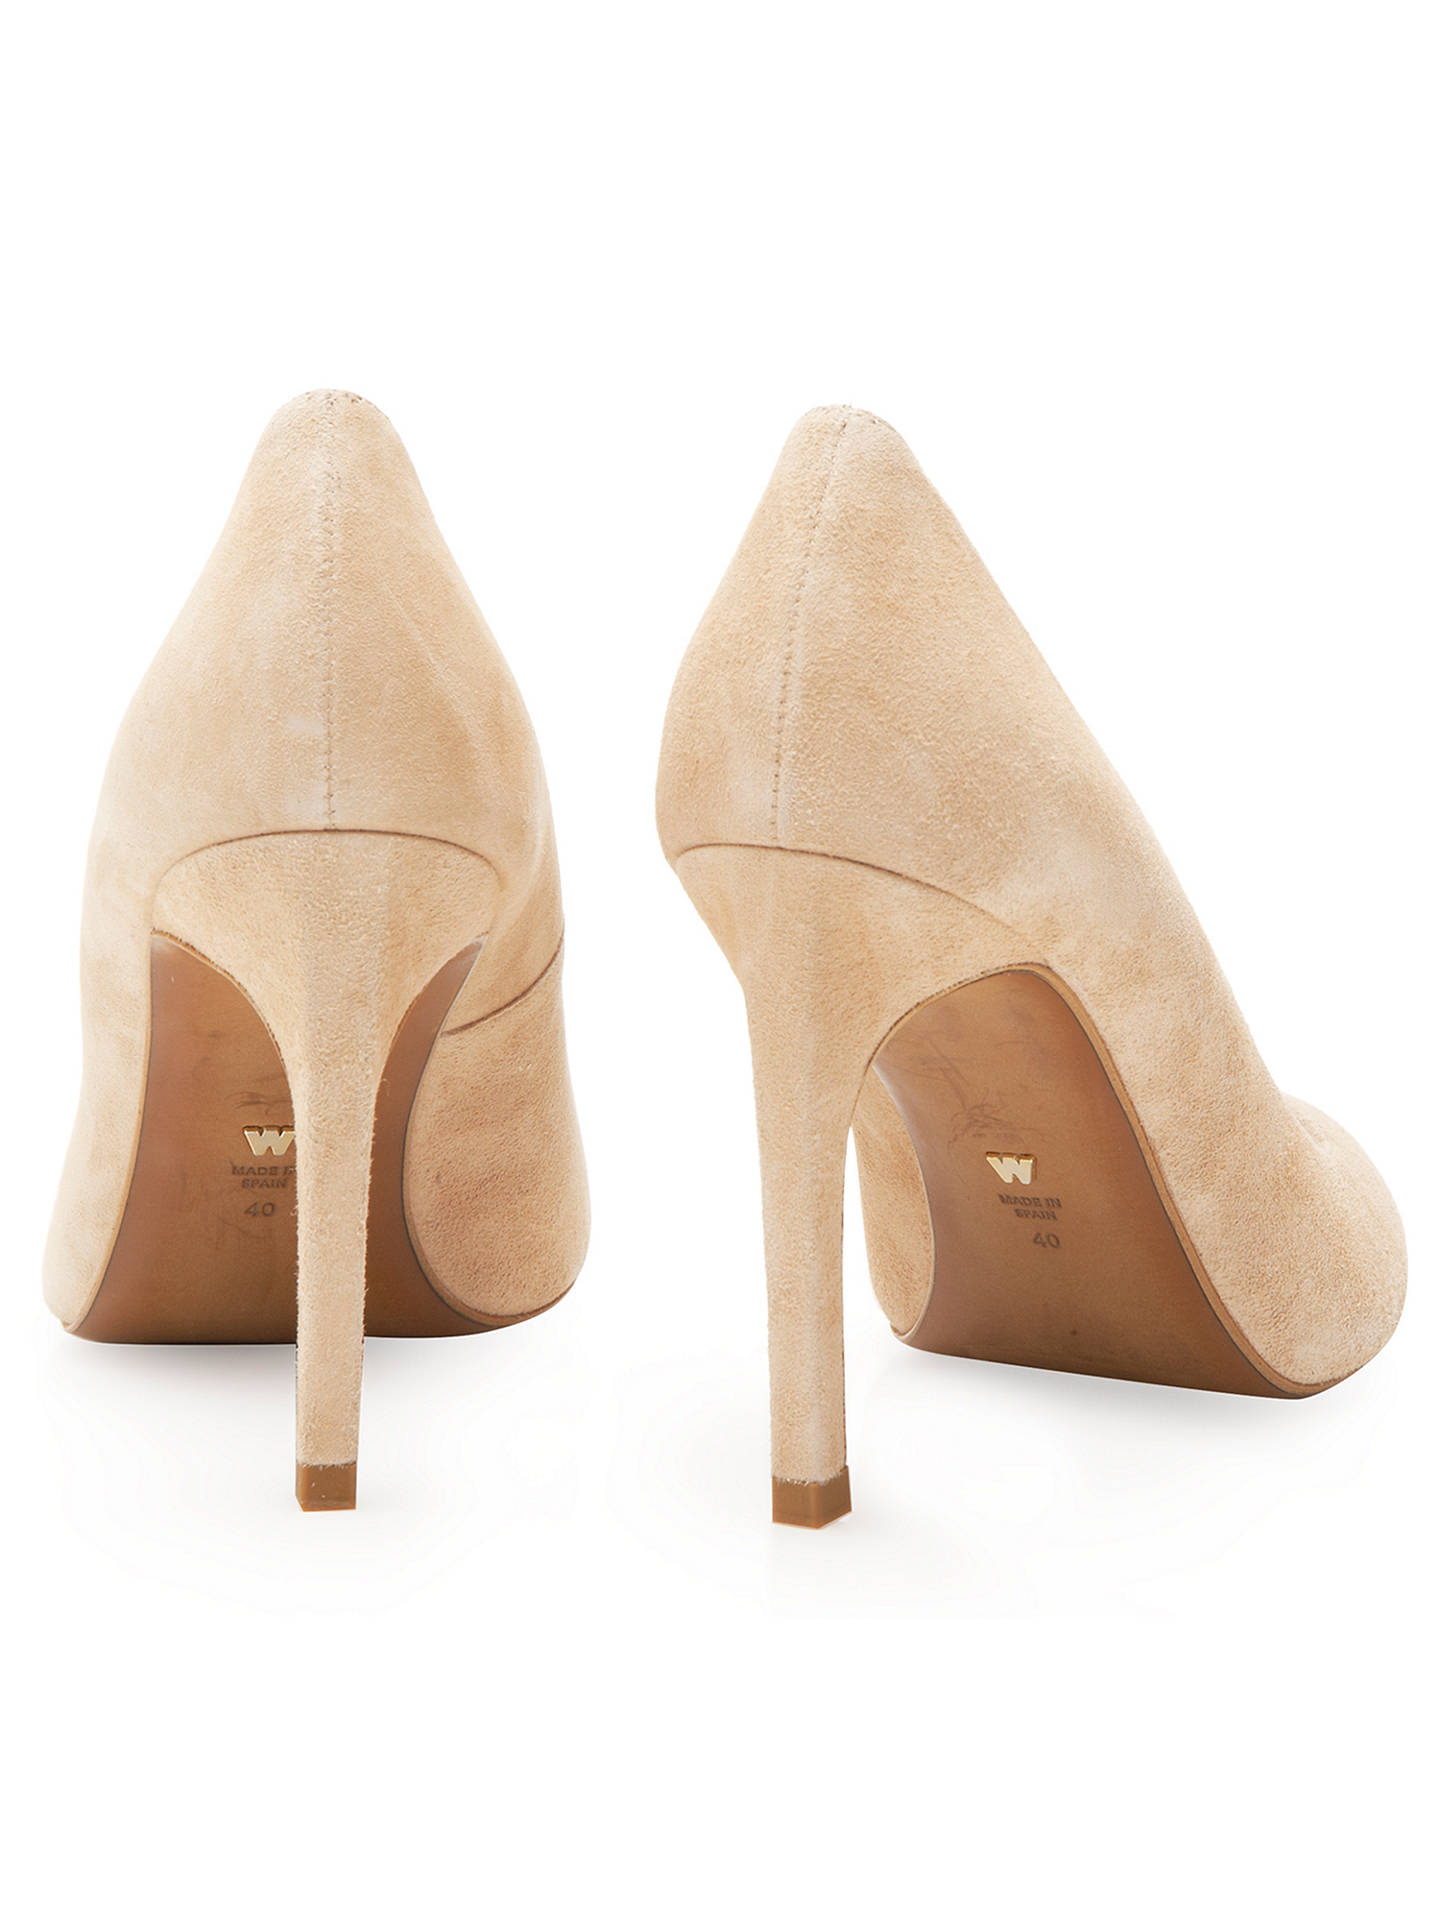 55357fe2d4c29 Buy Whistles Cornel Stiletto Heeled Court Shoes, Nude Suede, 4 Online at  johnlewis.